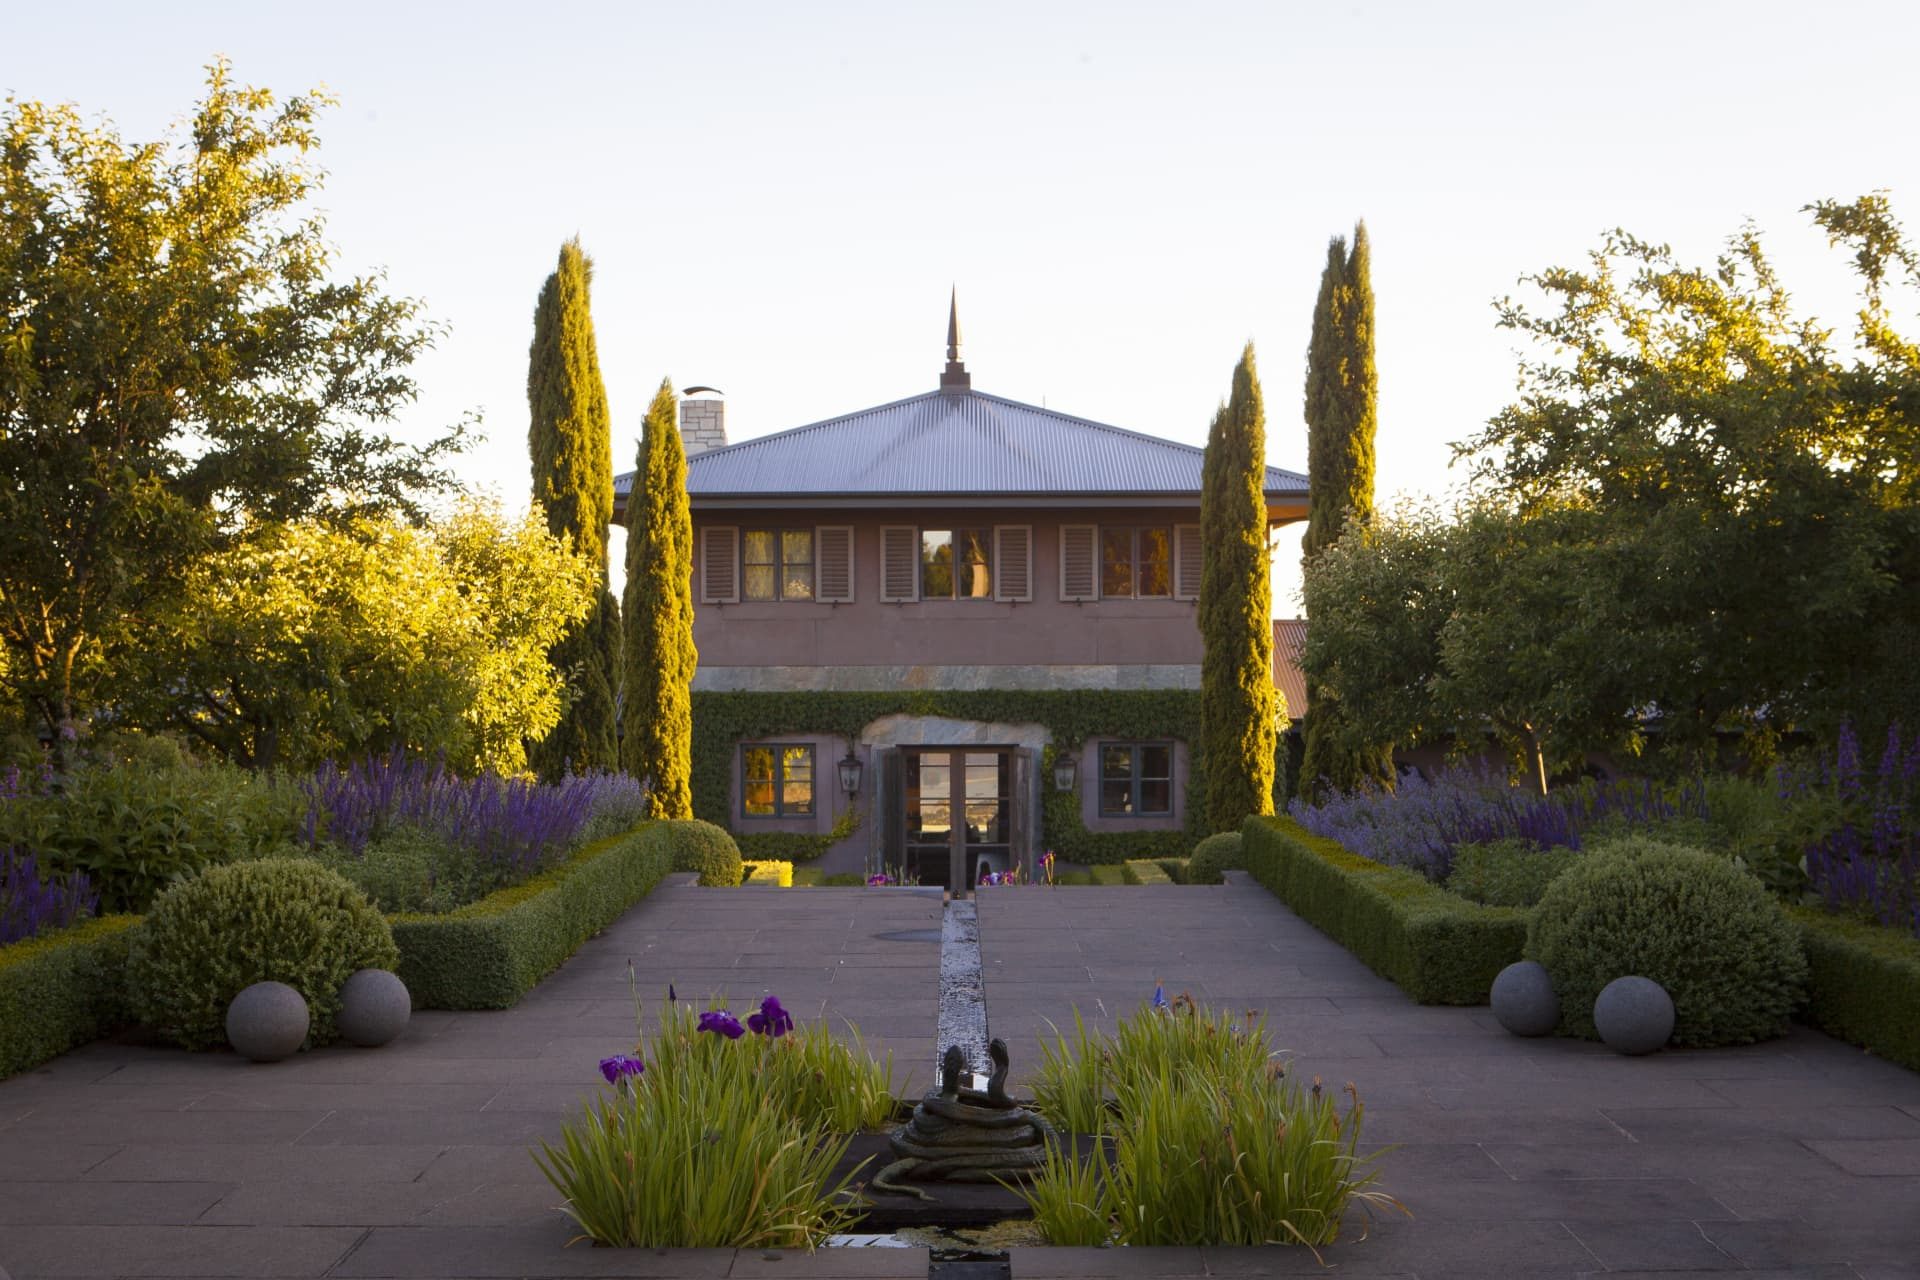 The front of the house at Stonefields shows Pauls love of symmetry and formal gardens. The water feature in the foreground is a sculpture of intertwined snakes that spout water from their mouths.